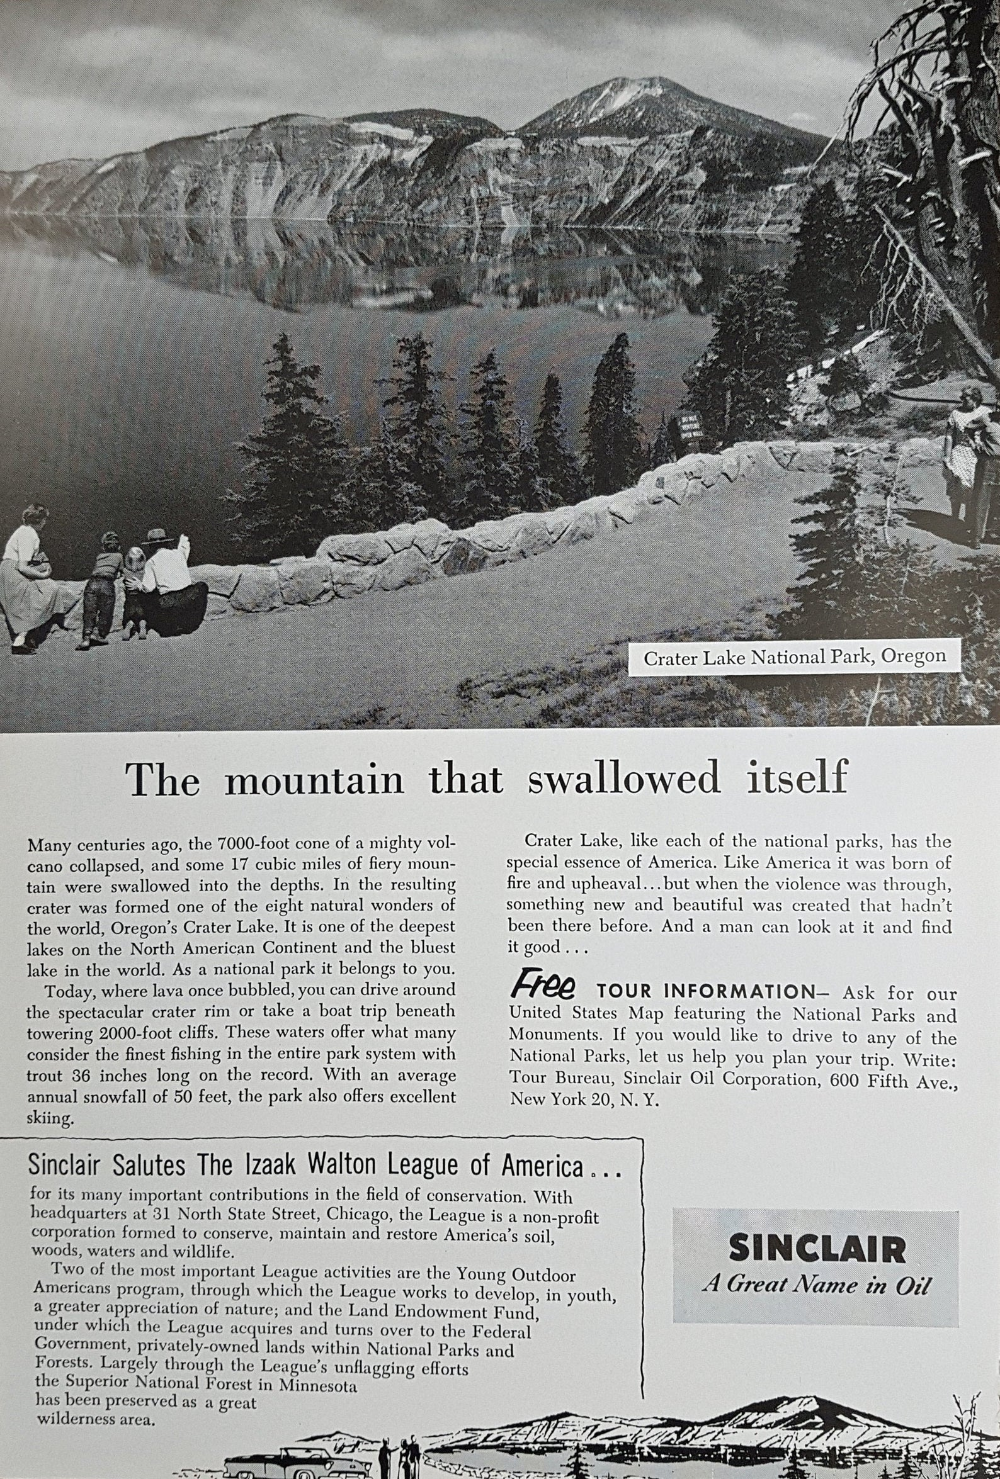 1955 OREGON USA Advertisement Retro Ad Crater Lake National Park